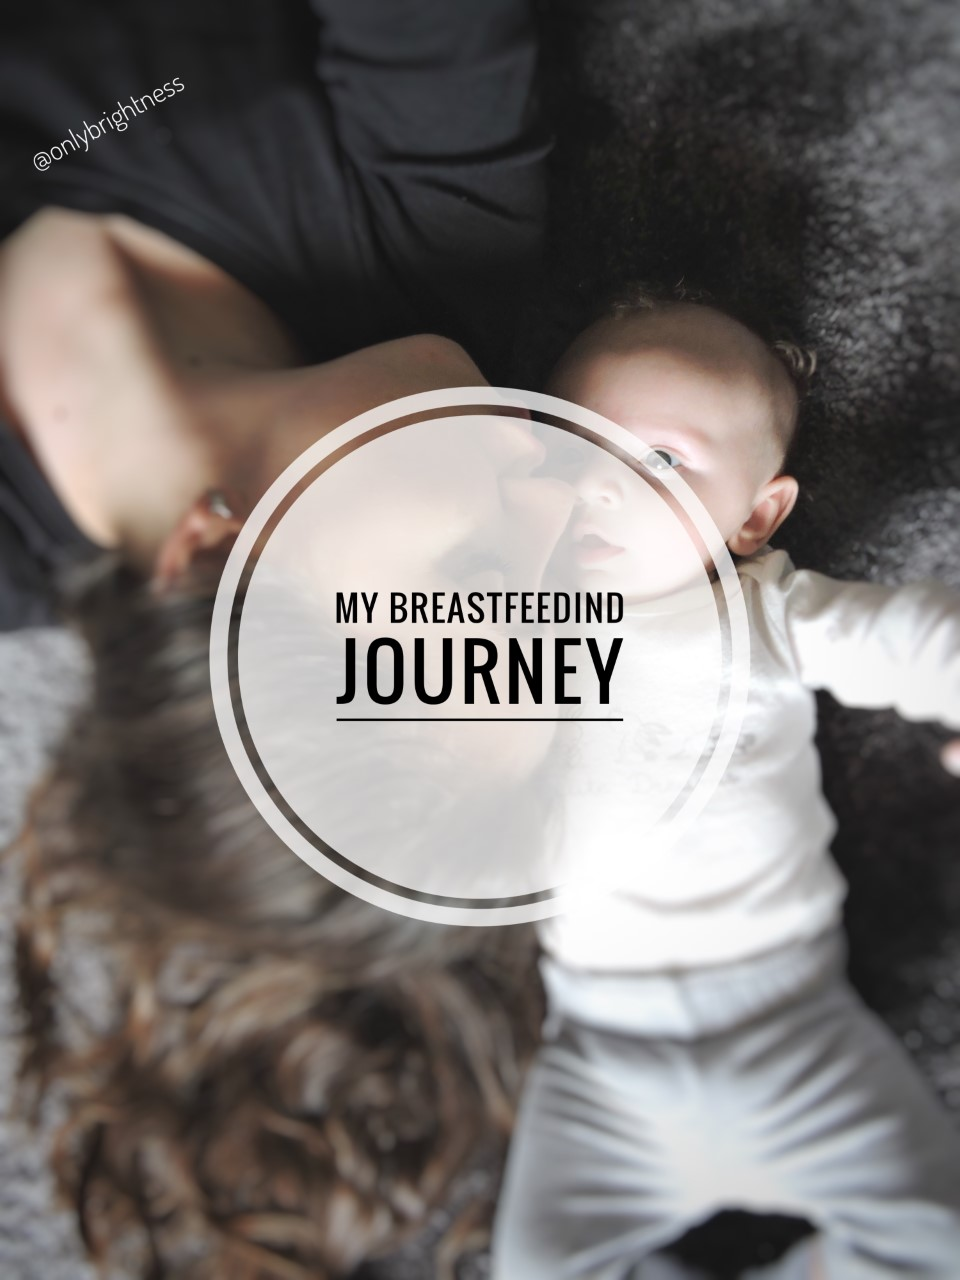 me and my girl onlybrightness - My Breastfeeding Journey - Tout sur l'allaitement de ma fille